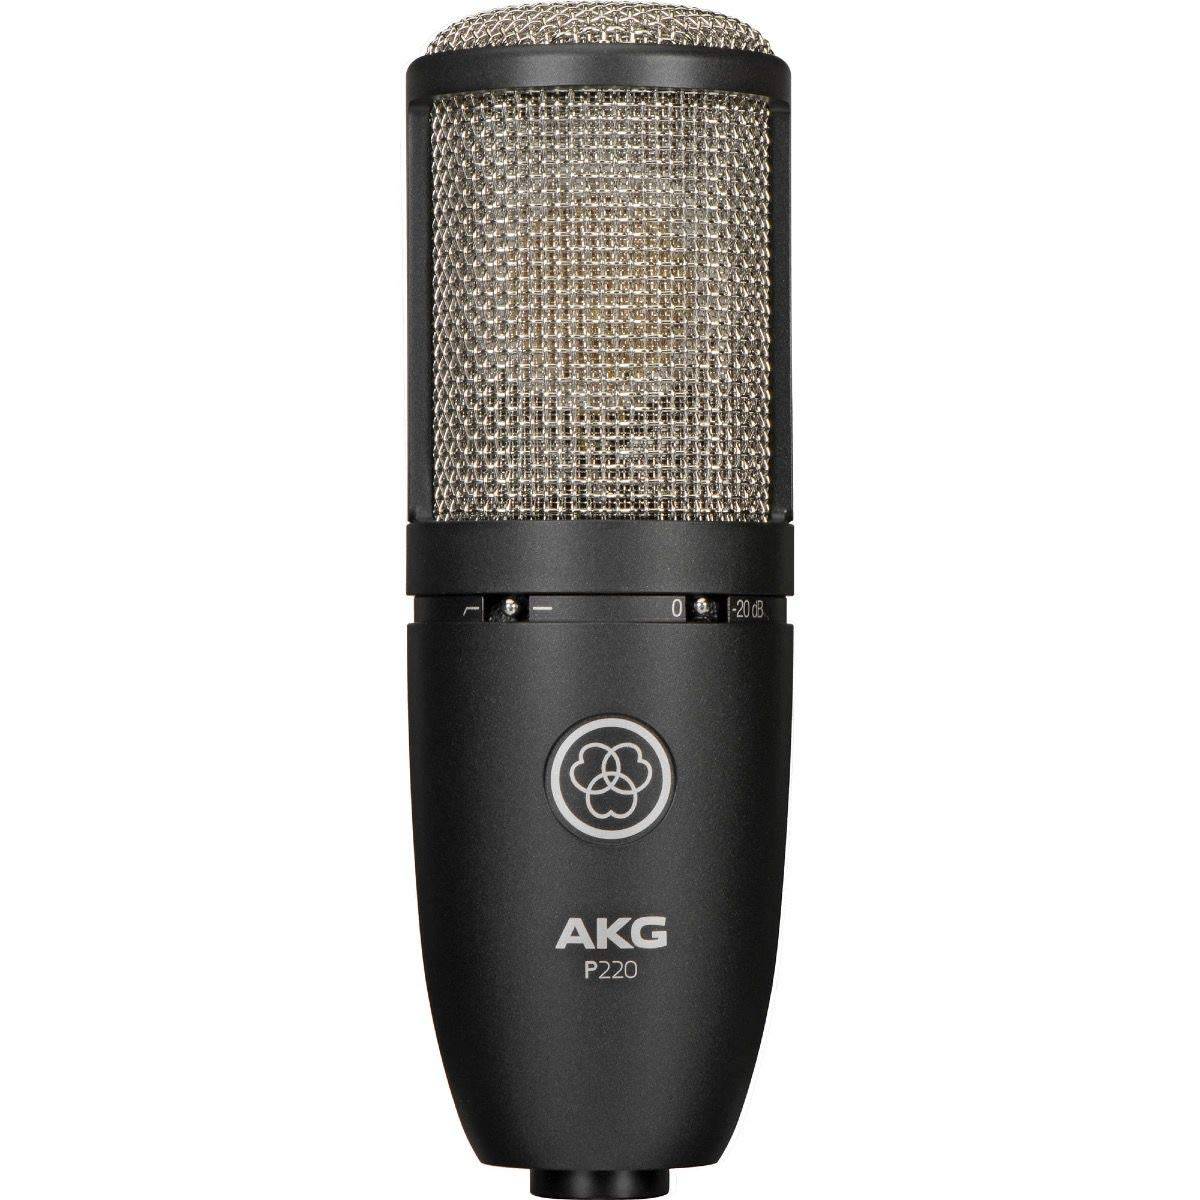 Project Studio P220 Large Diaphragm Condenser Microphone (Black) (Renewed)